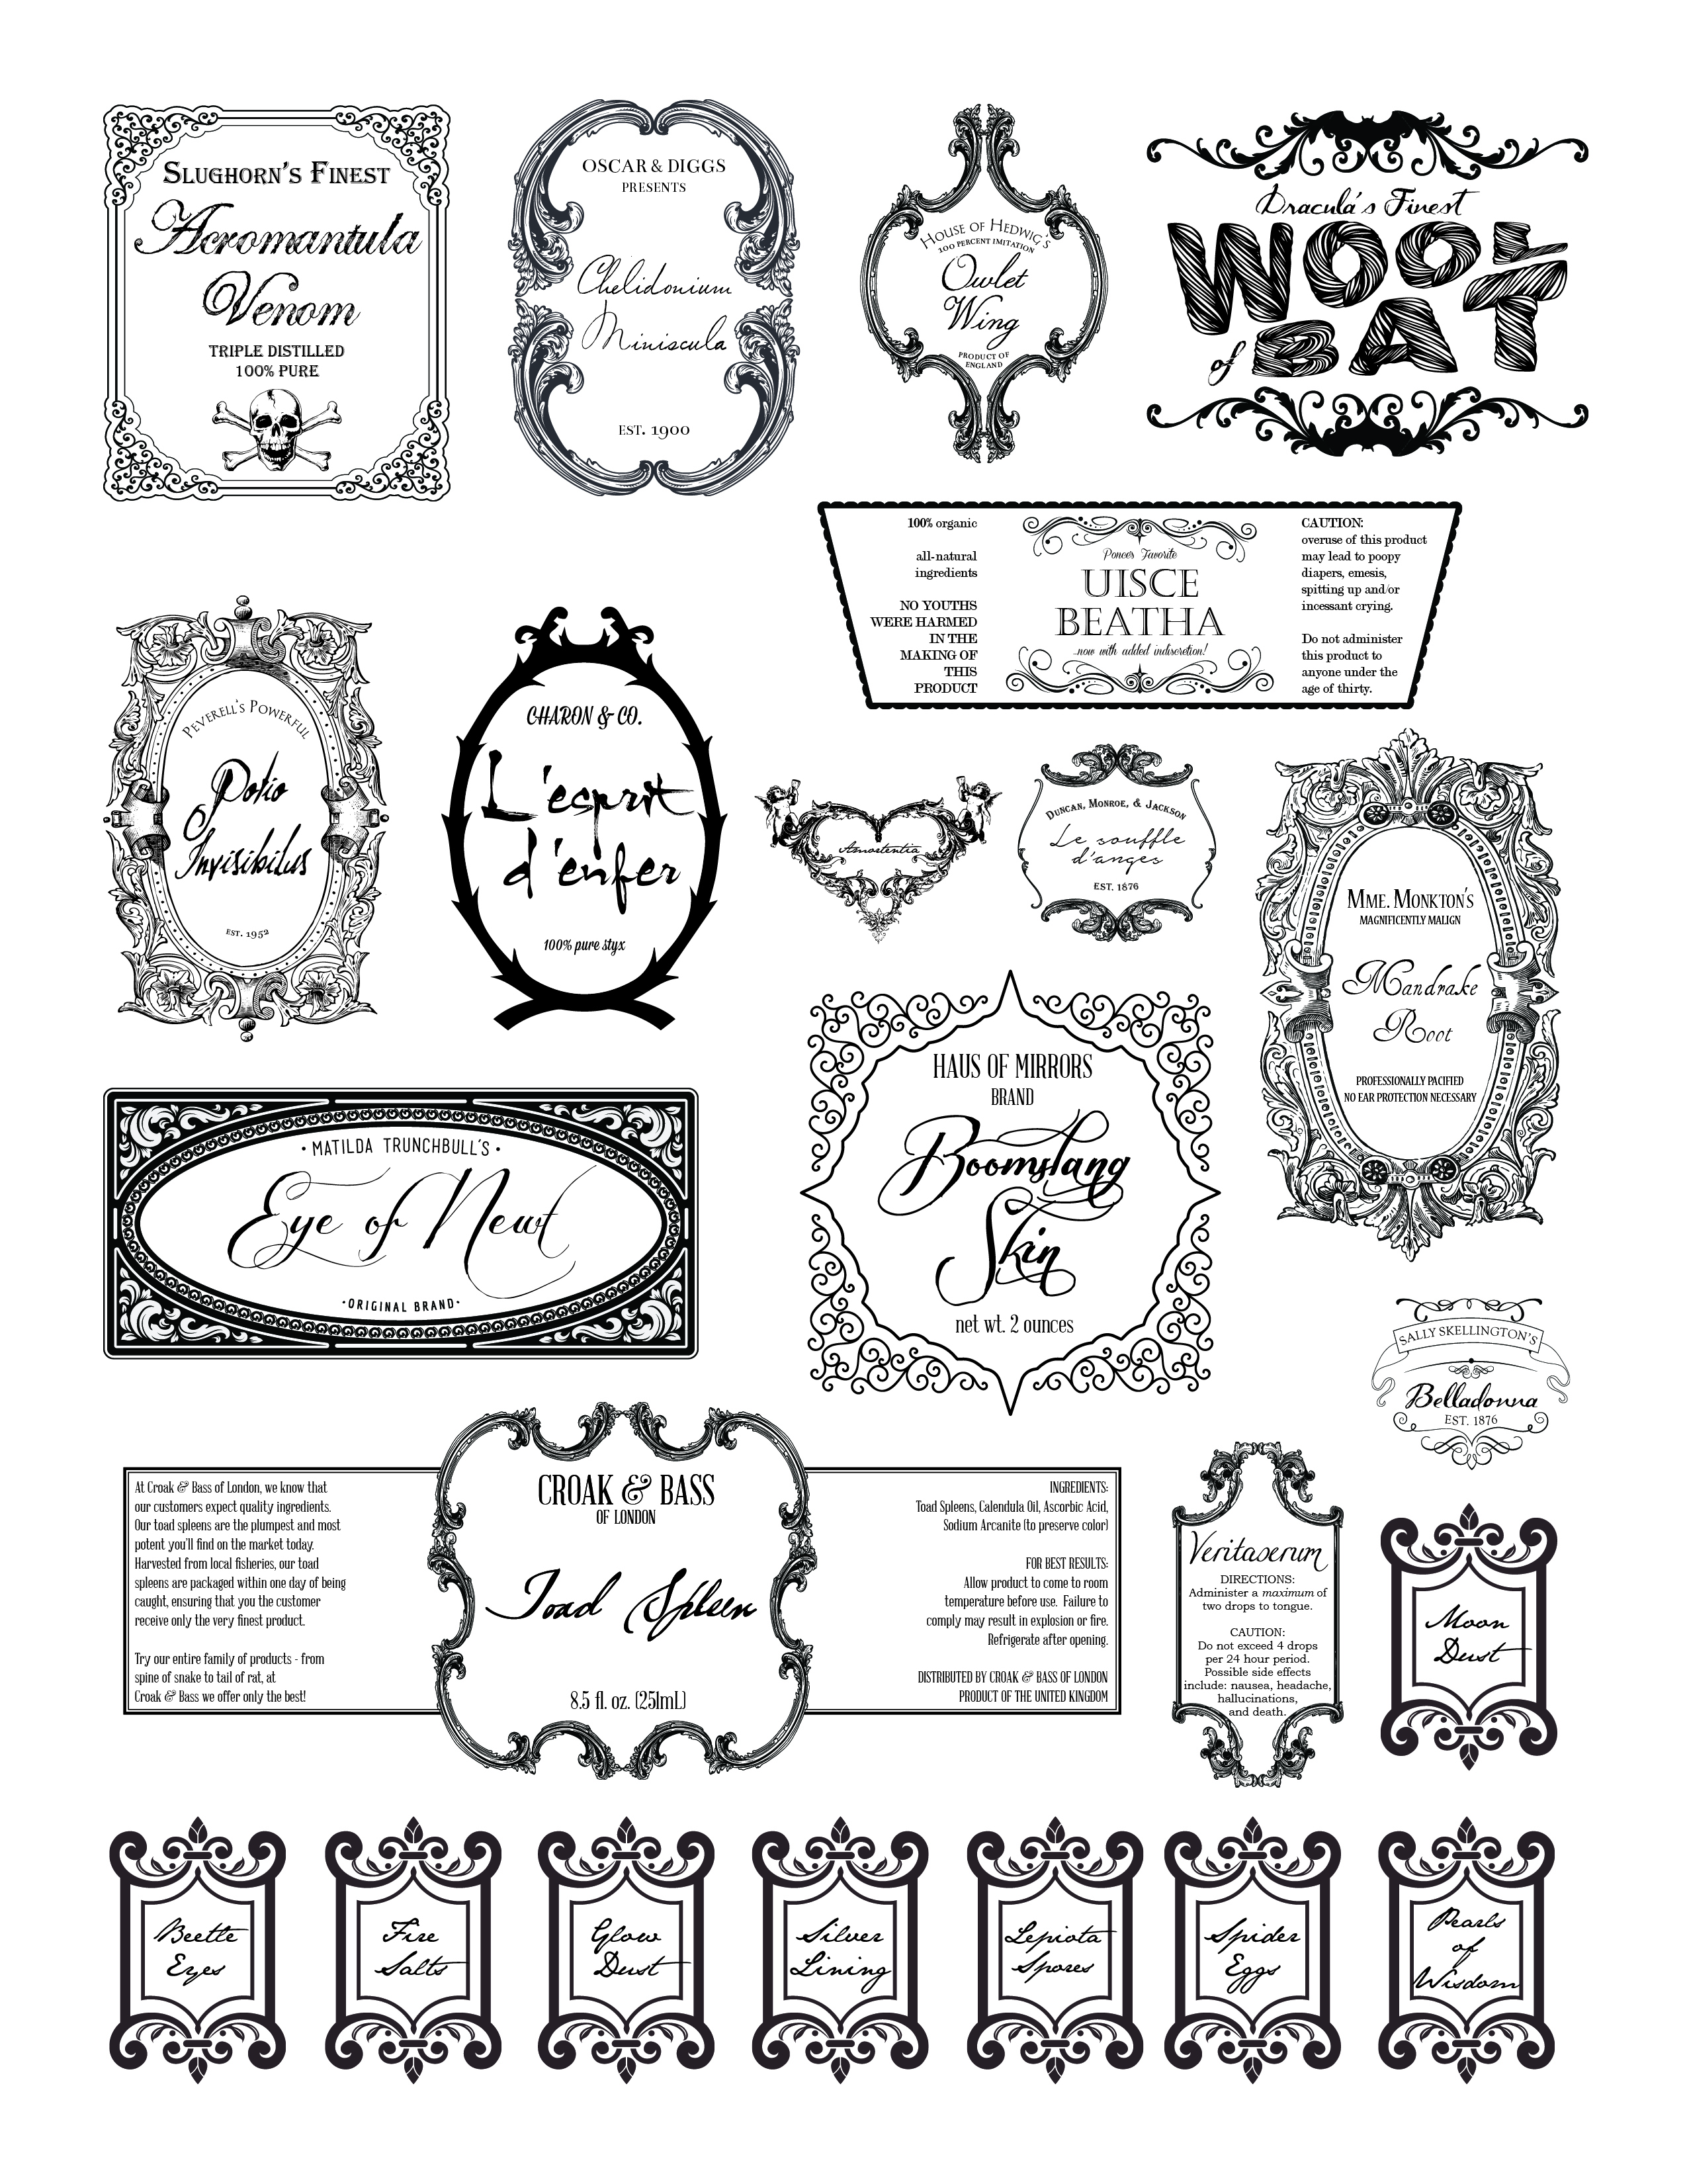 photo regarding Harry Potter Potion Labels Printable titled Halloween Archives Circa 1932